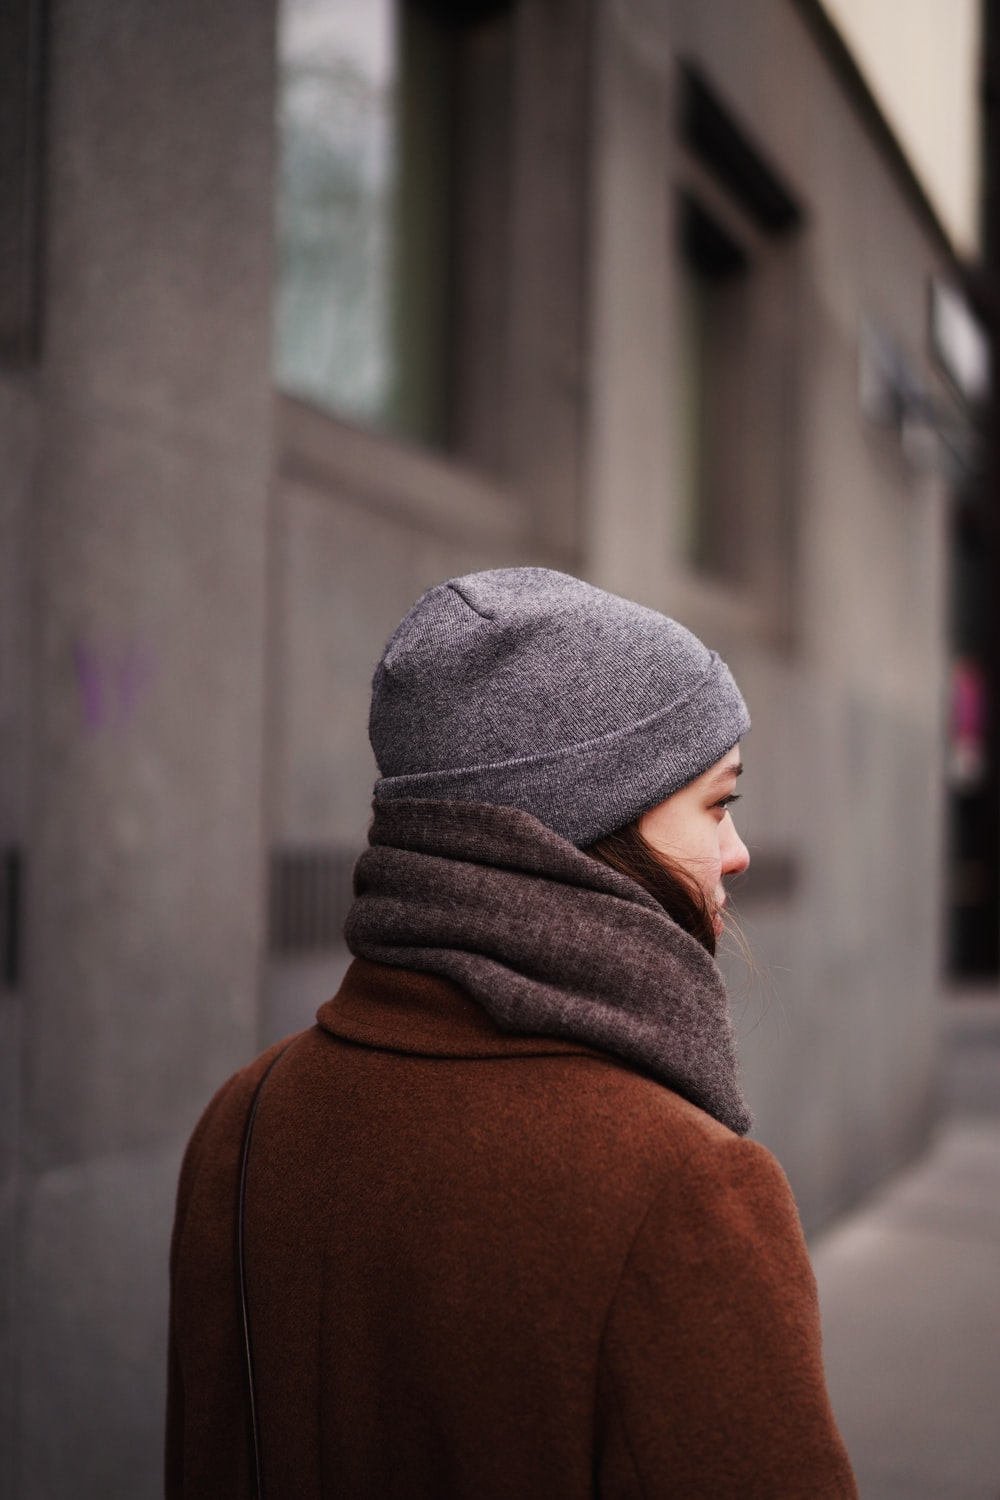 person in gray knit cap and brown hoodie